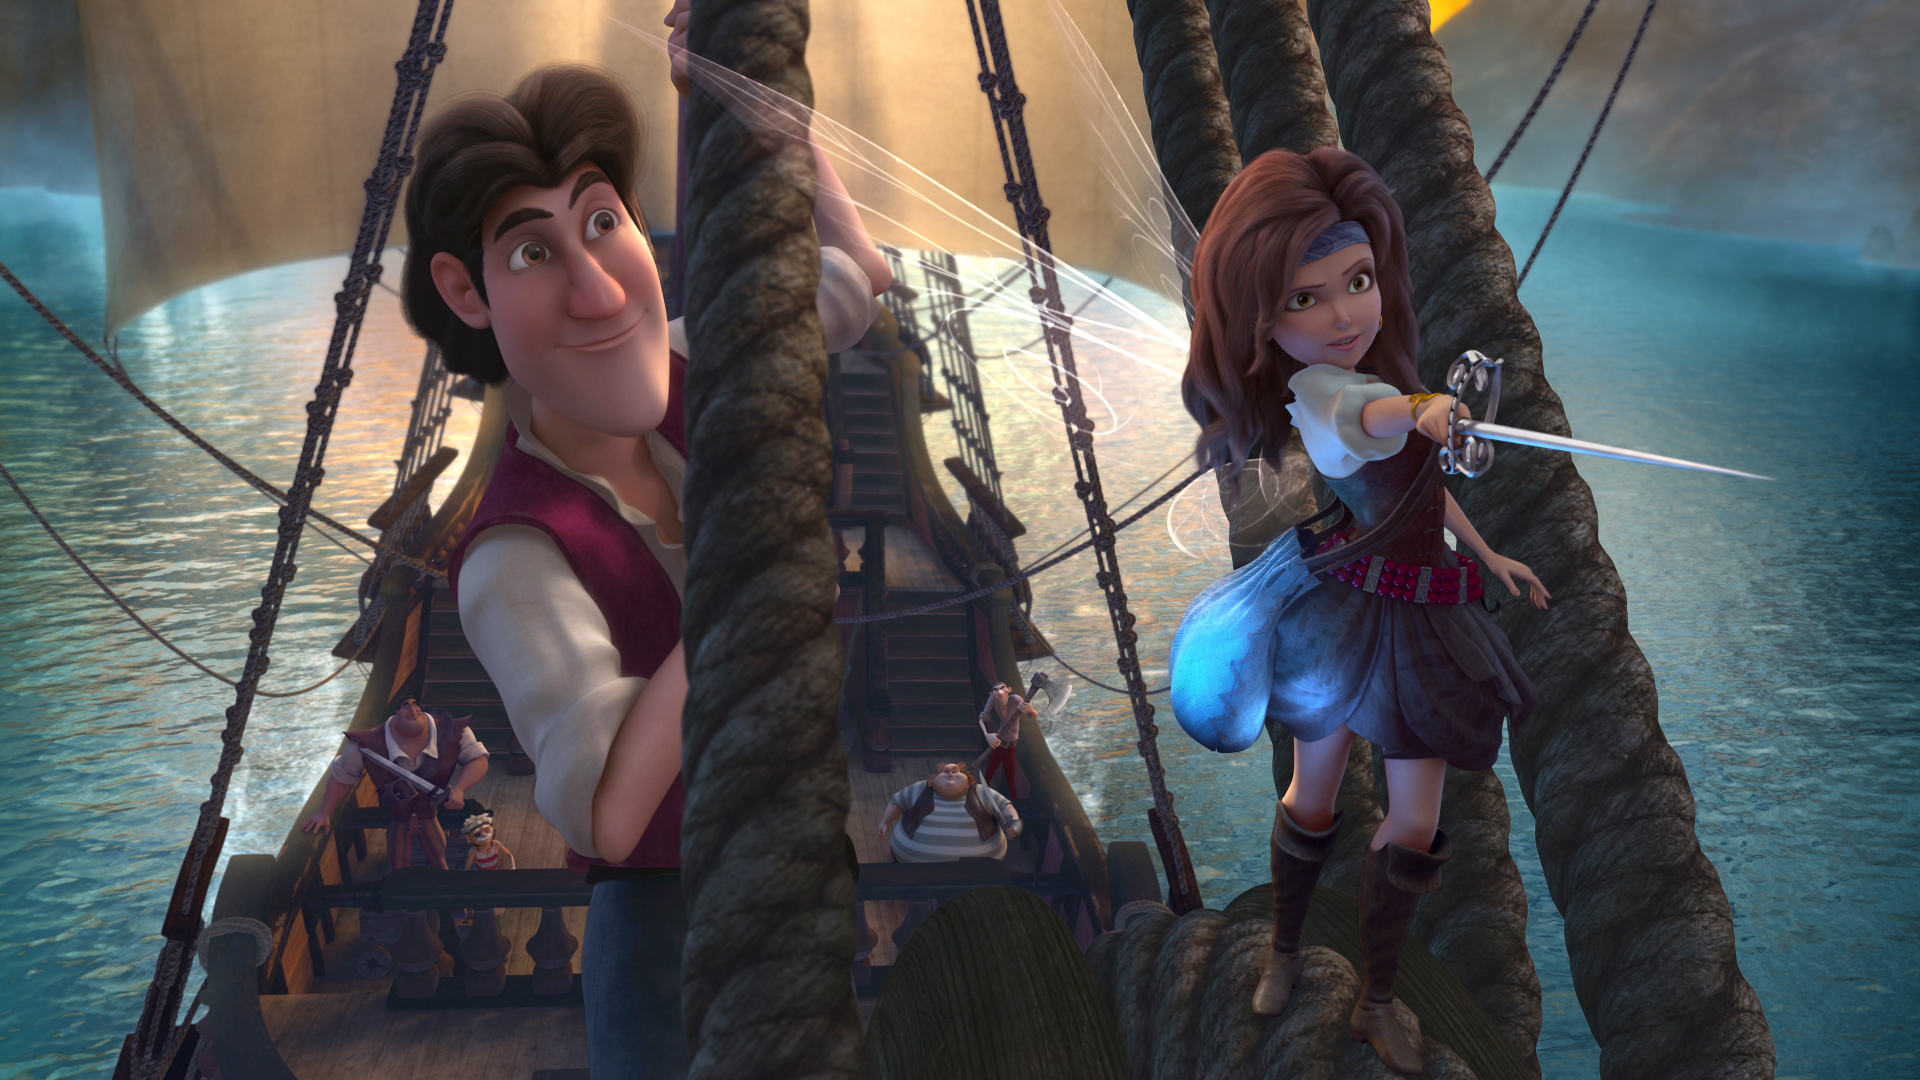 Photo Flash: Disney Partners with Fashion Designer Christian Siriano for THE PIRATE FAIRY